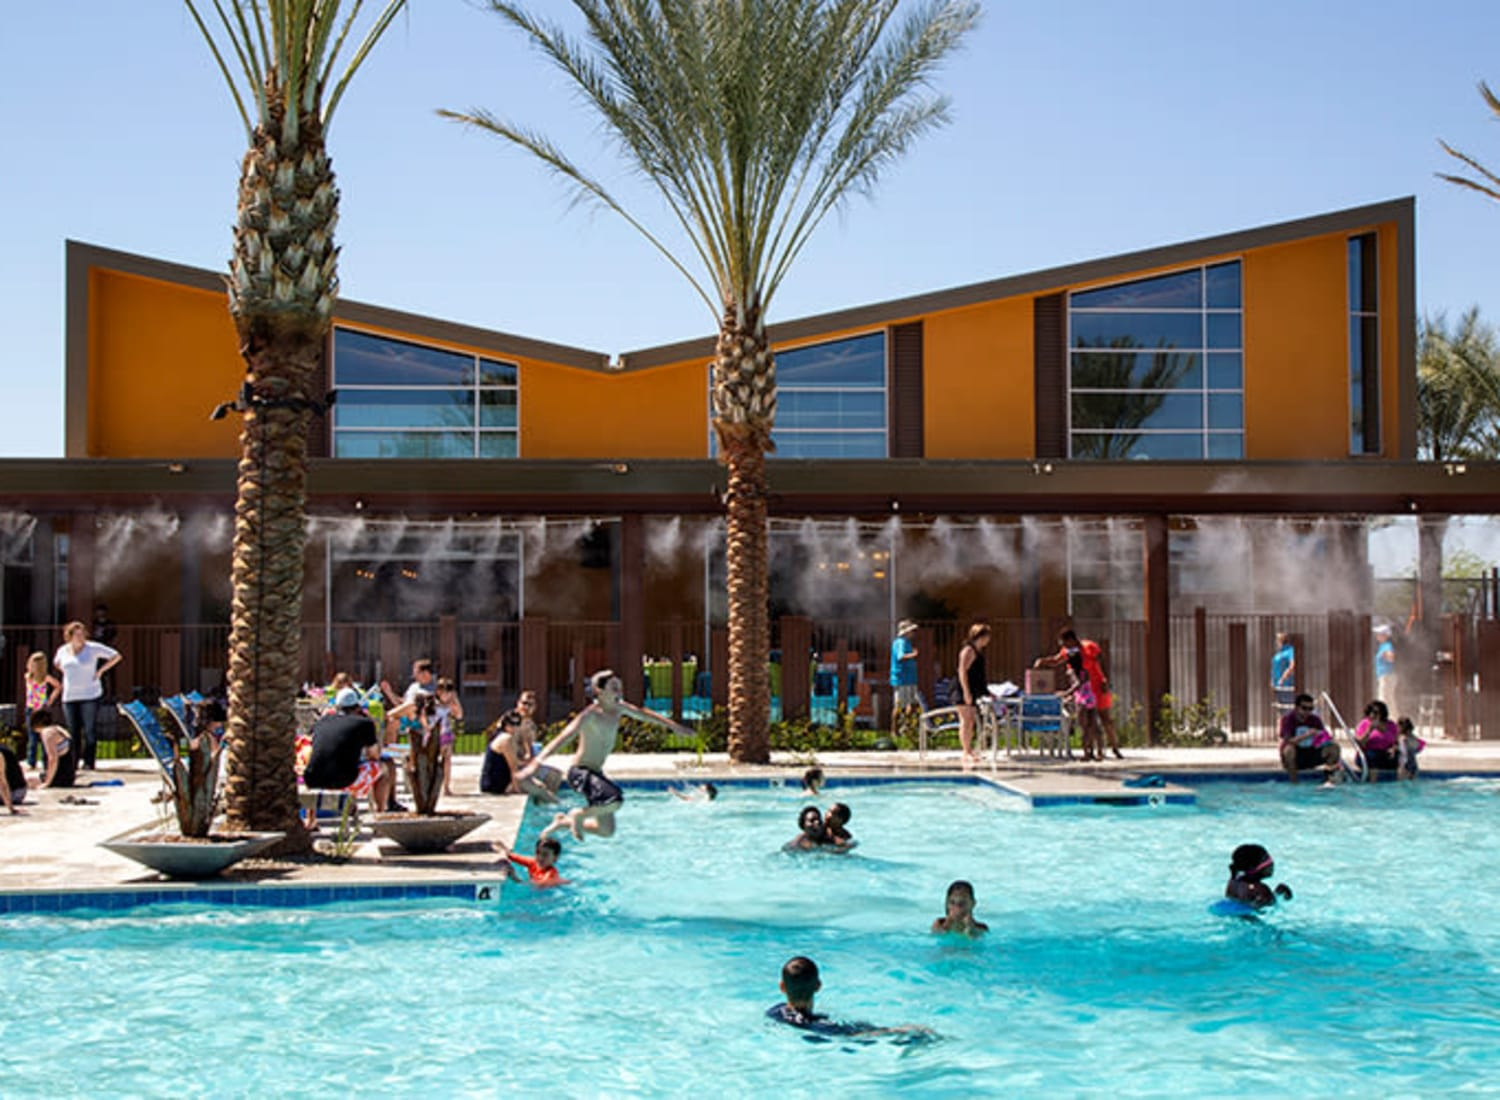 Eastmark apartments in Mesa, Arizona